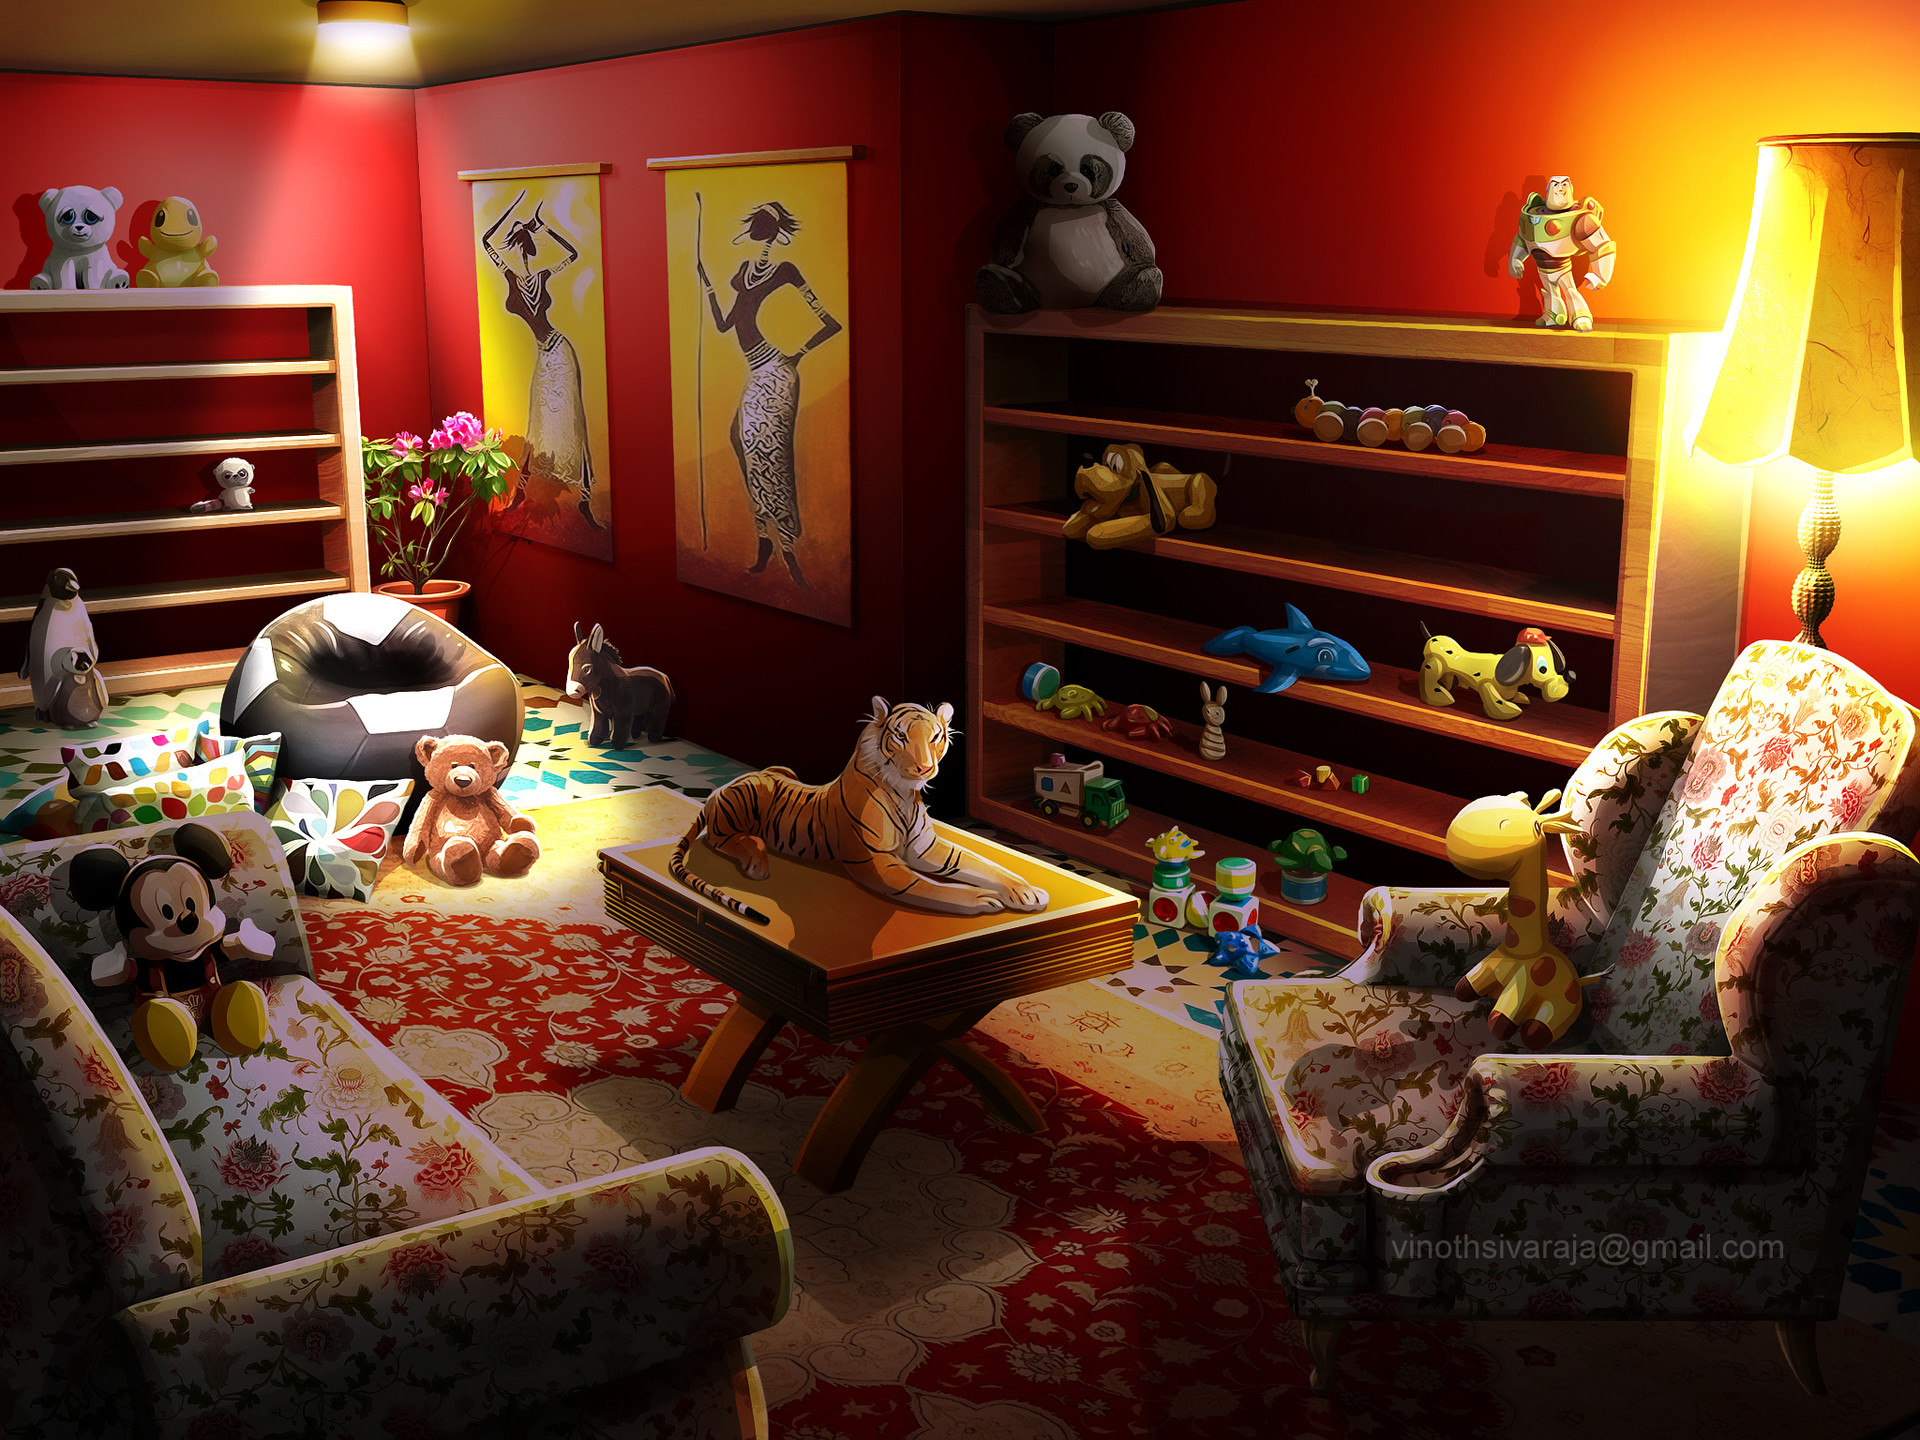 Kids Room By Vinoth Sivaraja